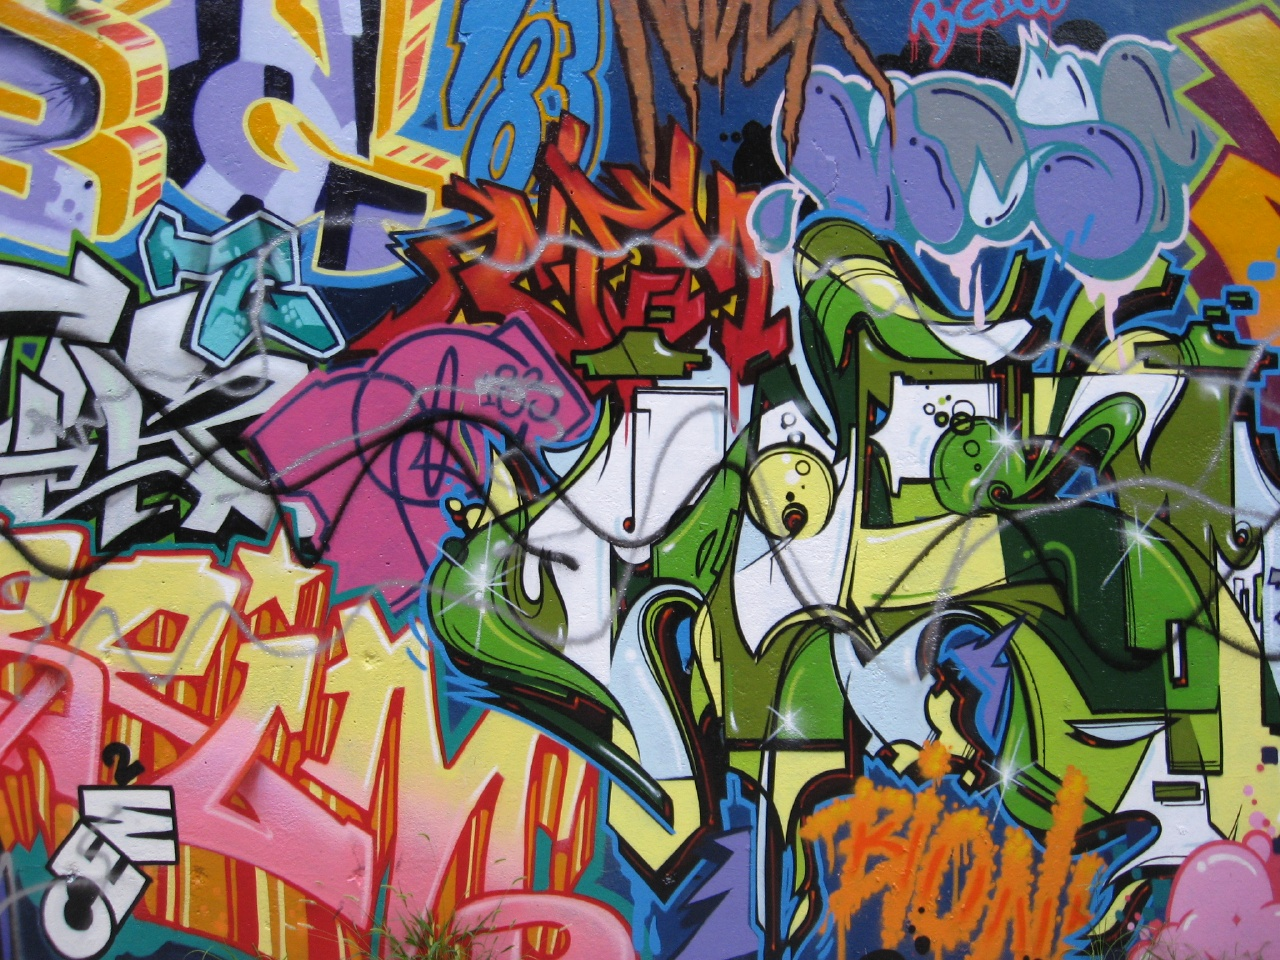 Label graffiti wall